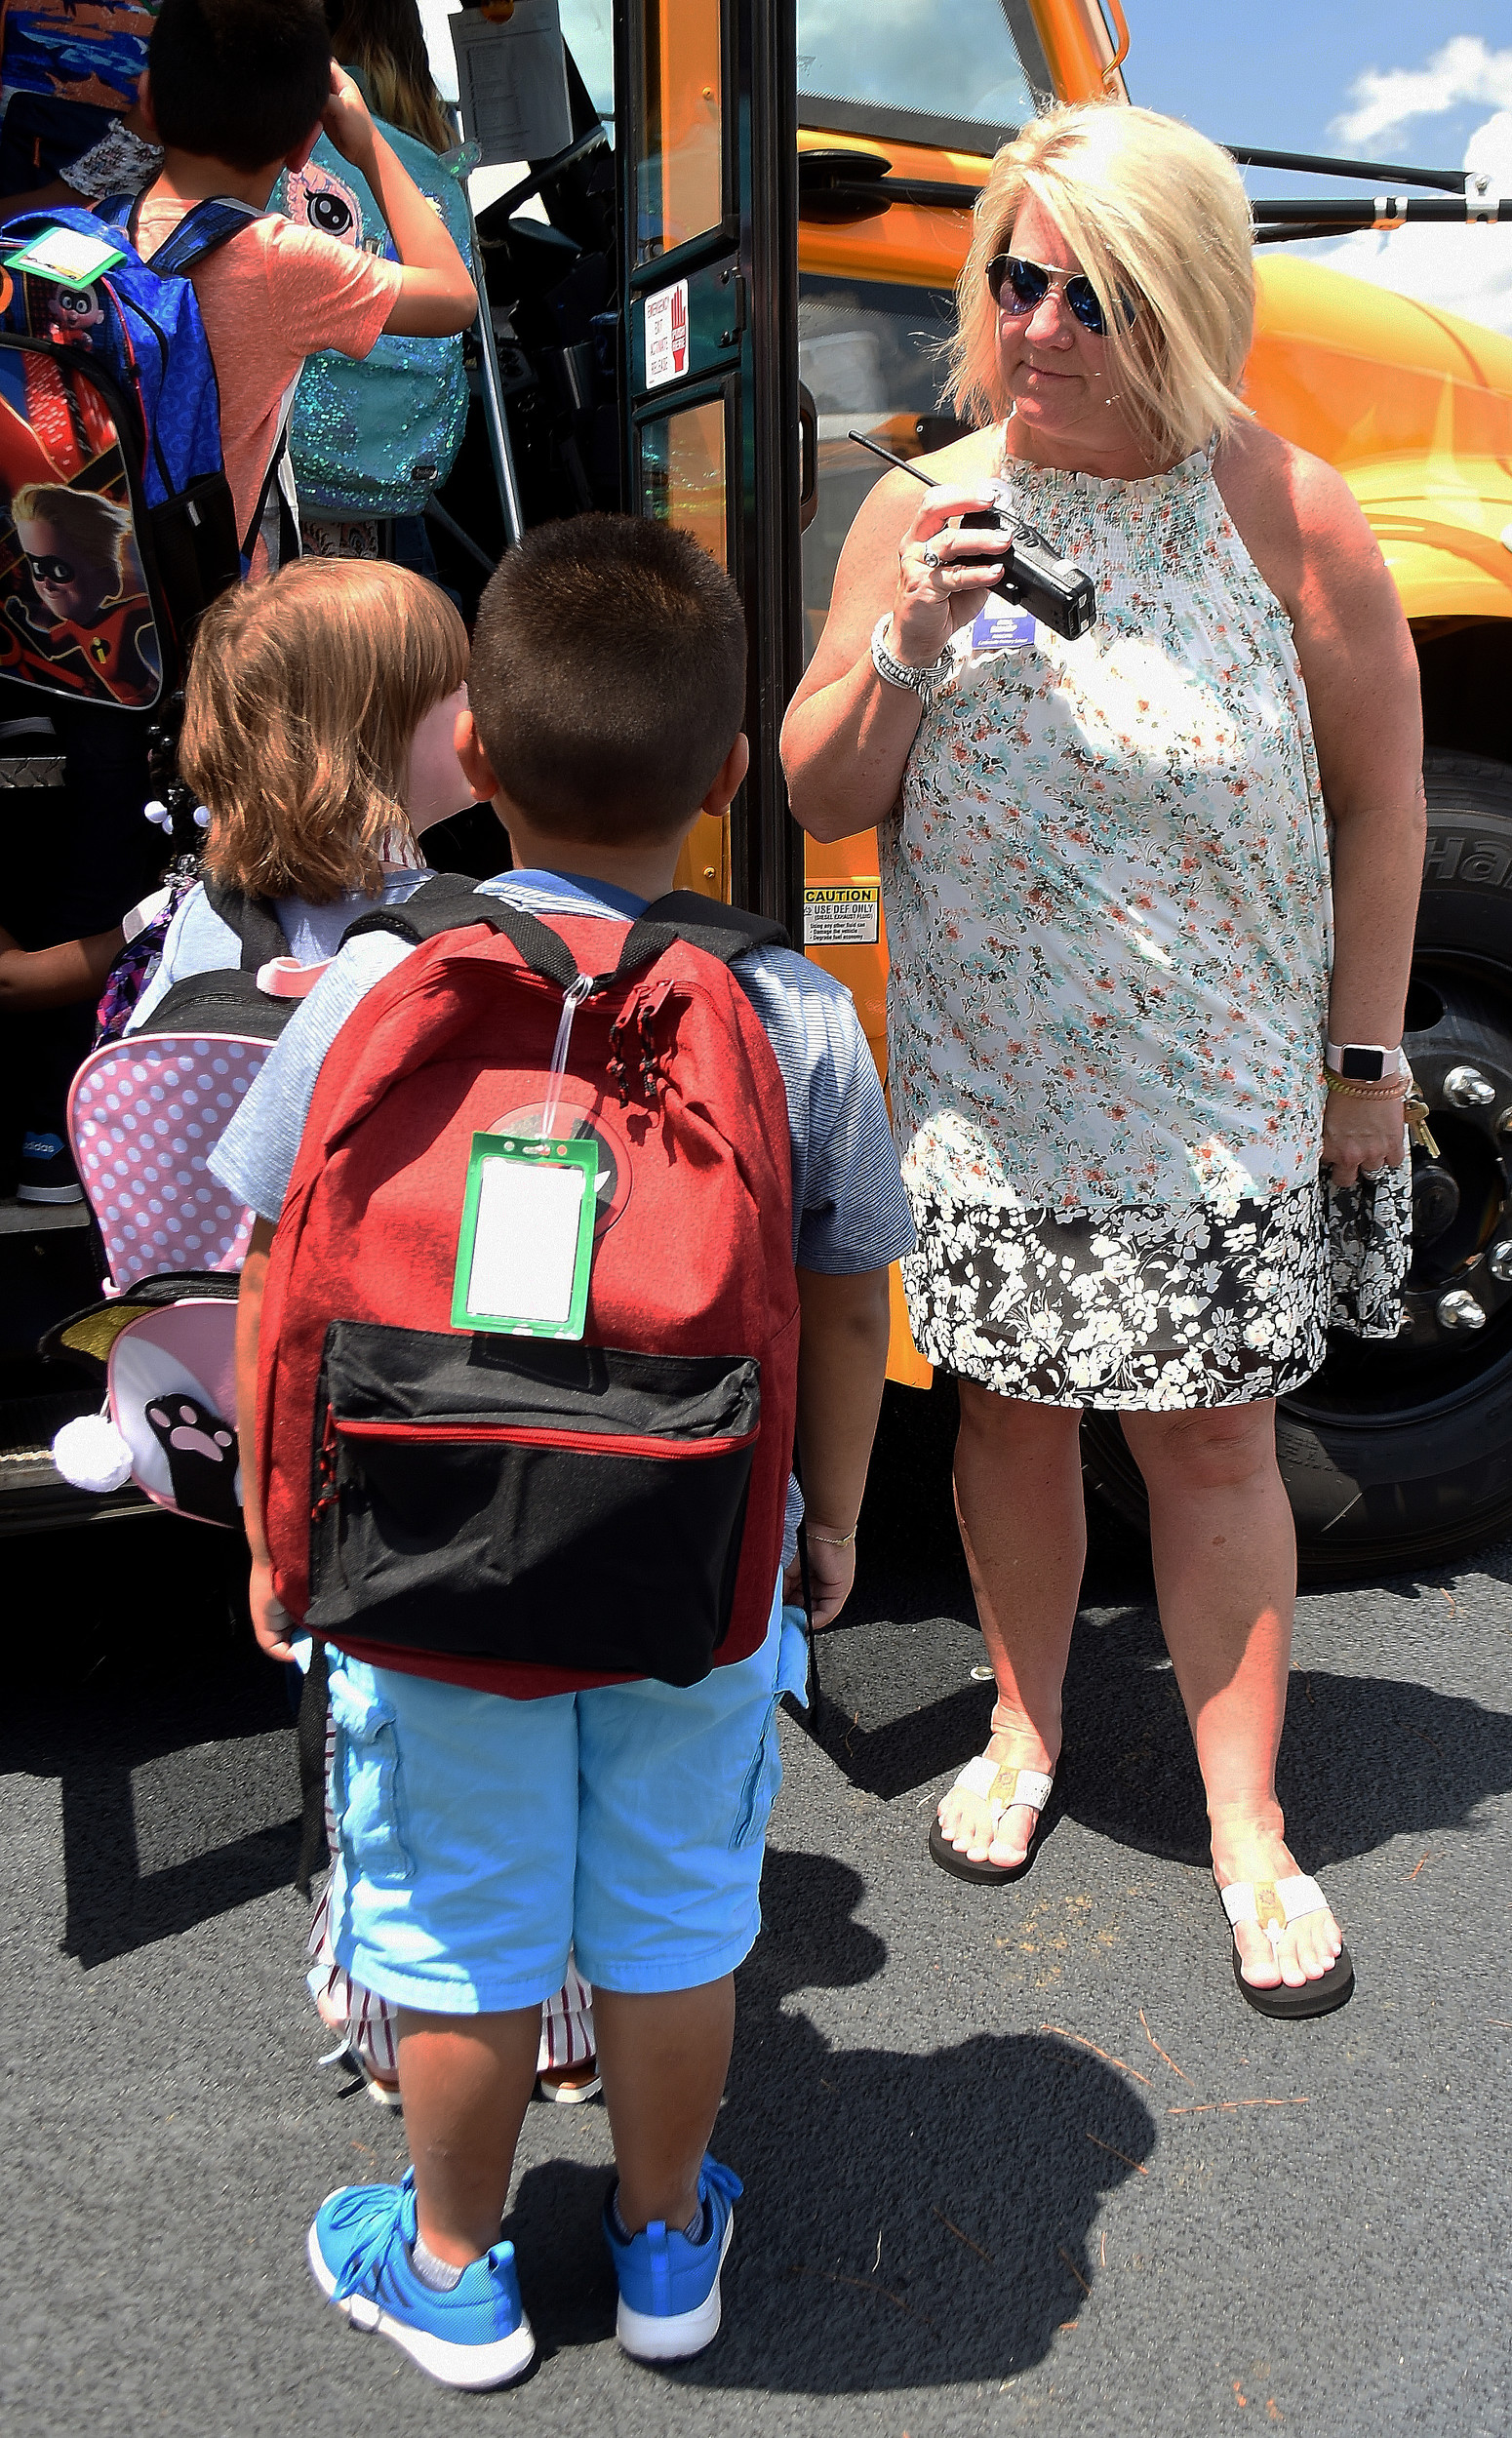 RANDY PARKER/THE DAILY TRIBUNE NEWS Cartersville Primary School Principal Gina Bishop watches as students board their bus after the first day of school Aug. 8.